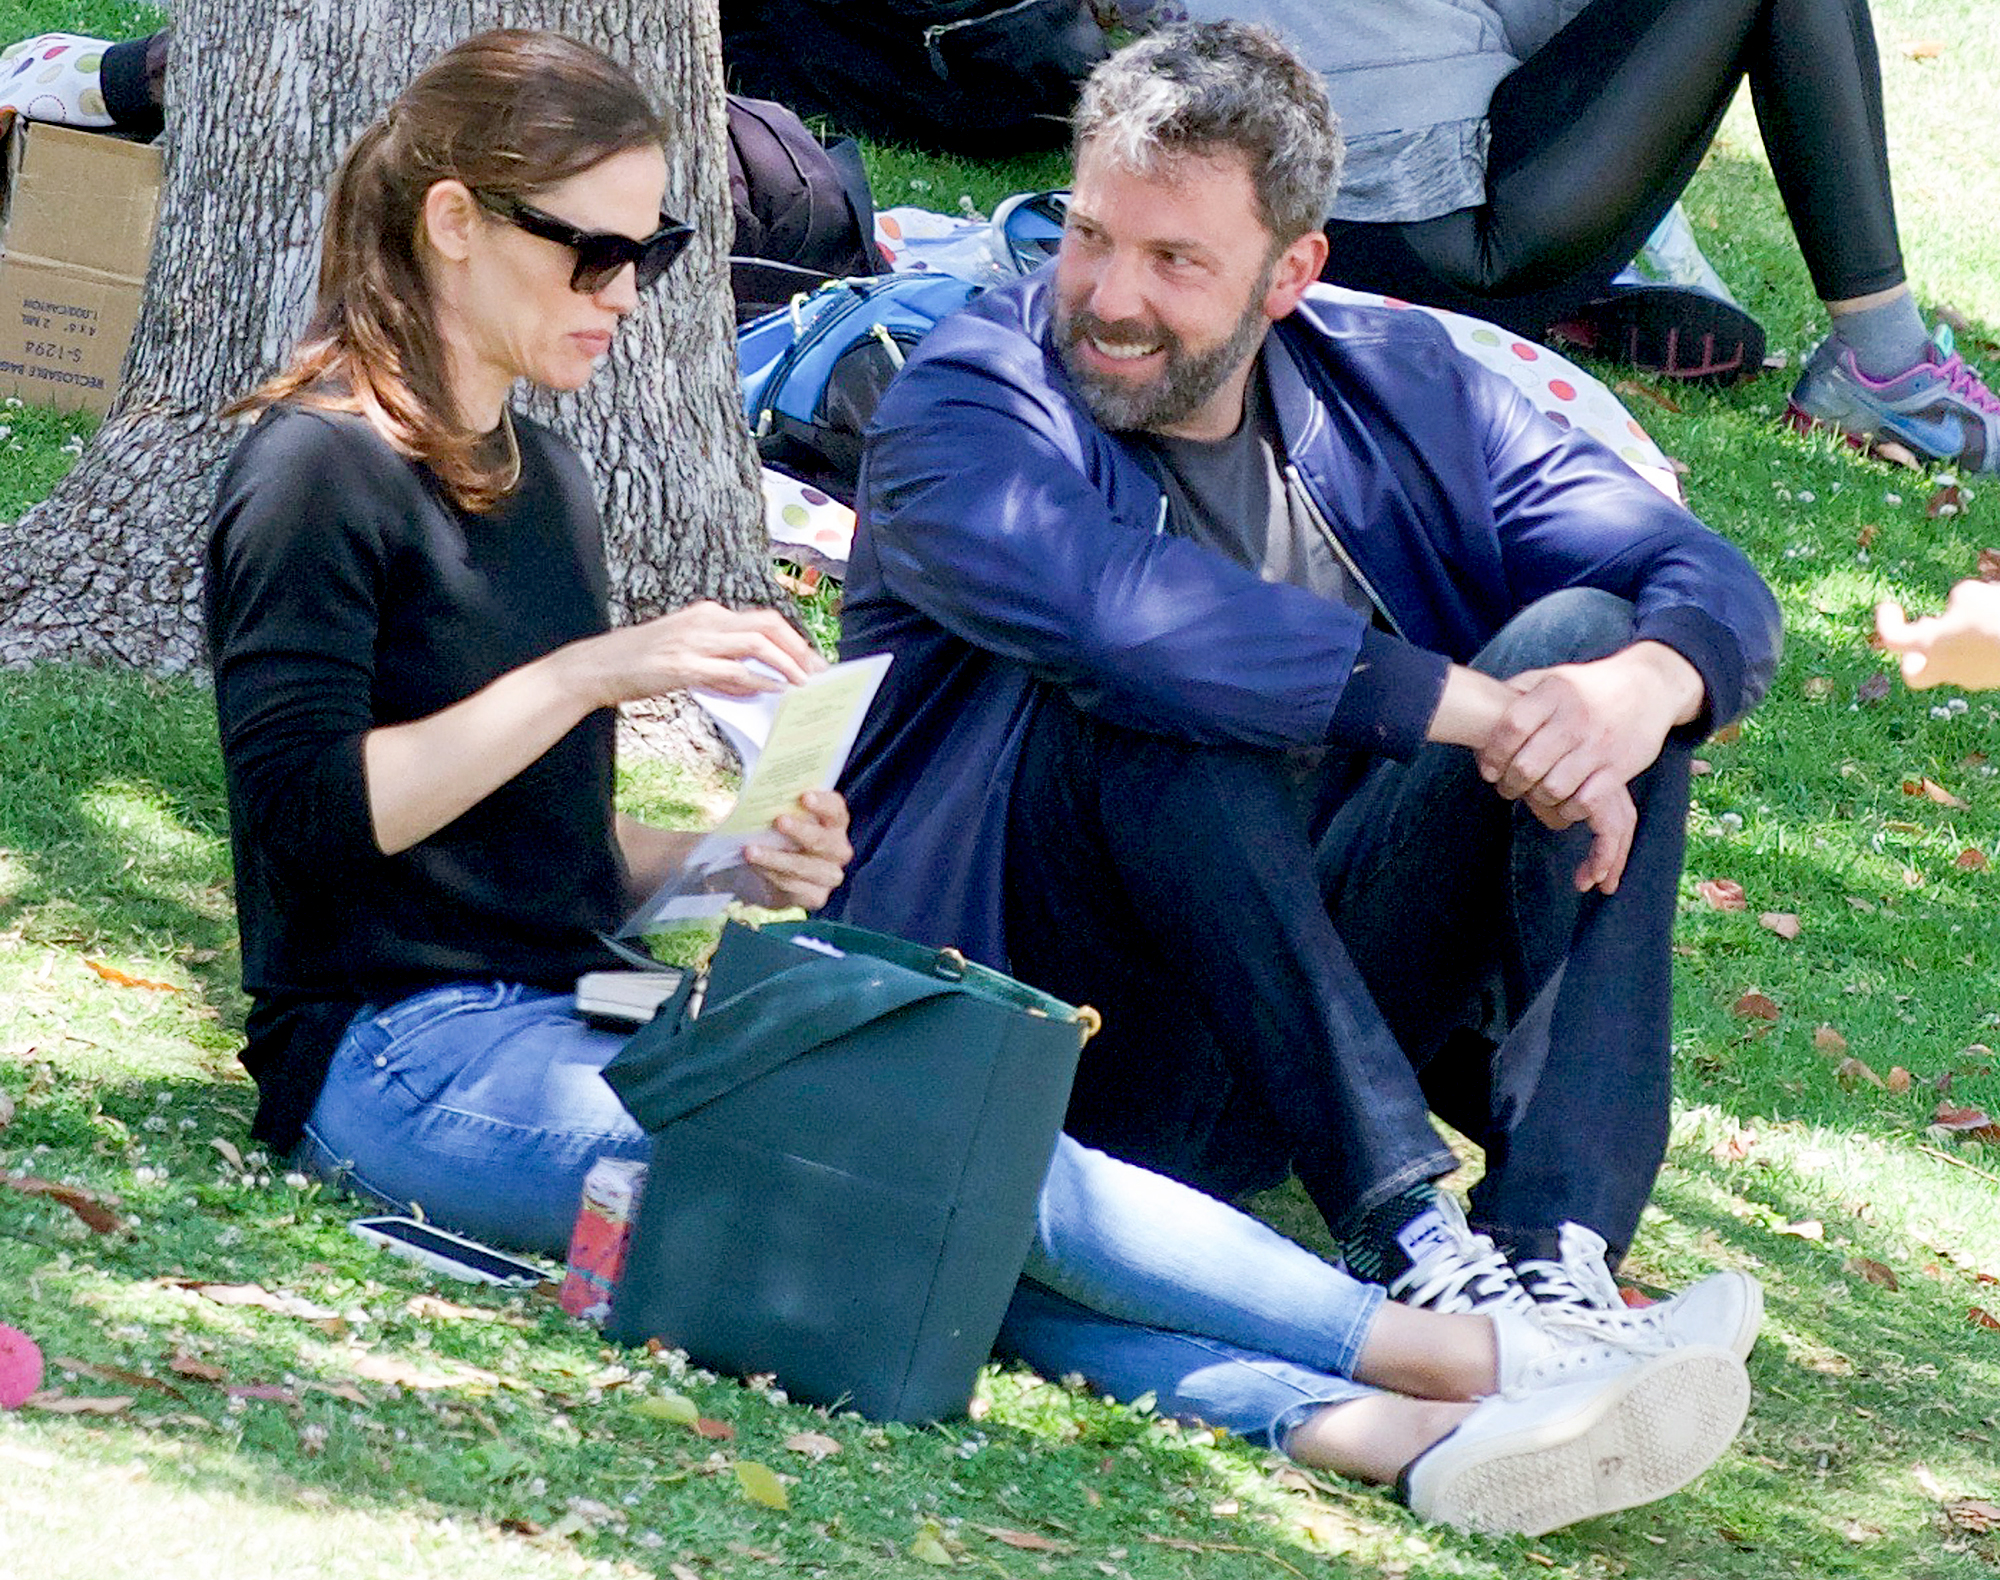 "Ben-Affleck-and-Jennifer-Garner-coparenting - ""I am a giant fan of Jennifer. She's just a fabulous person. She's just a wonderful person,"" the Gone Girl star, who finalized his divorce from Garner in October 2018, told CBS This Morning in March 2016. ""She's a great mother. She's a real talent. She has set such a good example and a lead that I follow. She's somebody that I admire and respect and remain excellent friends with."""